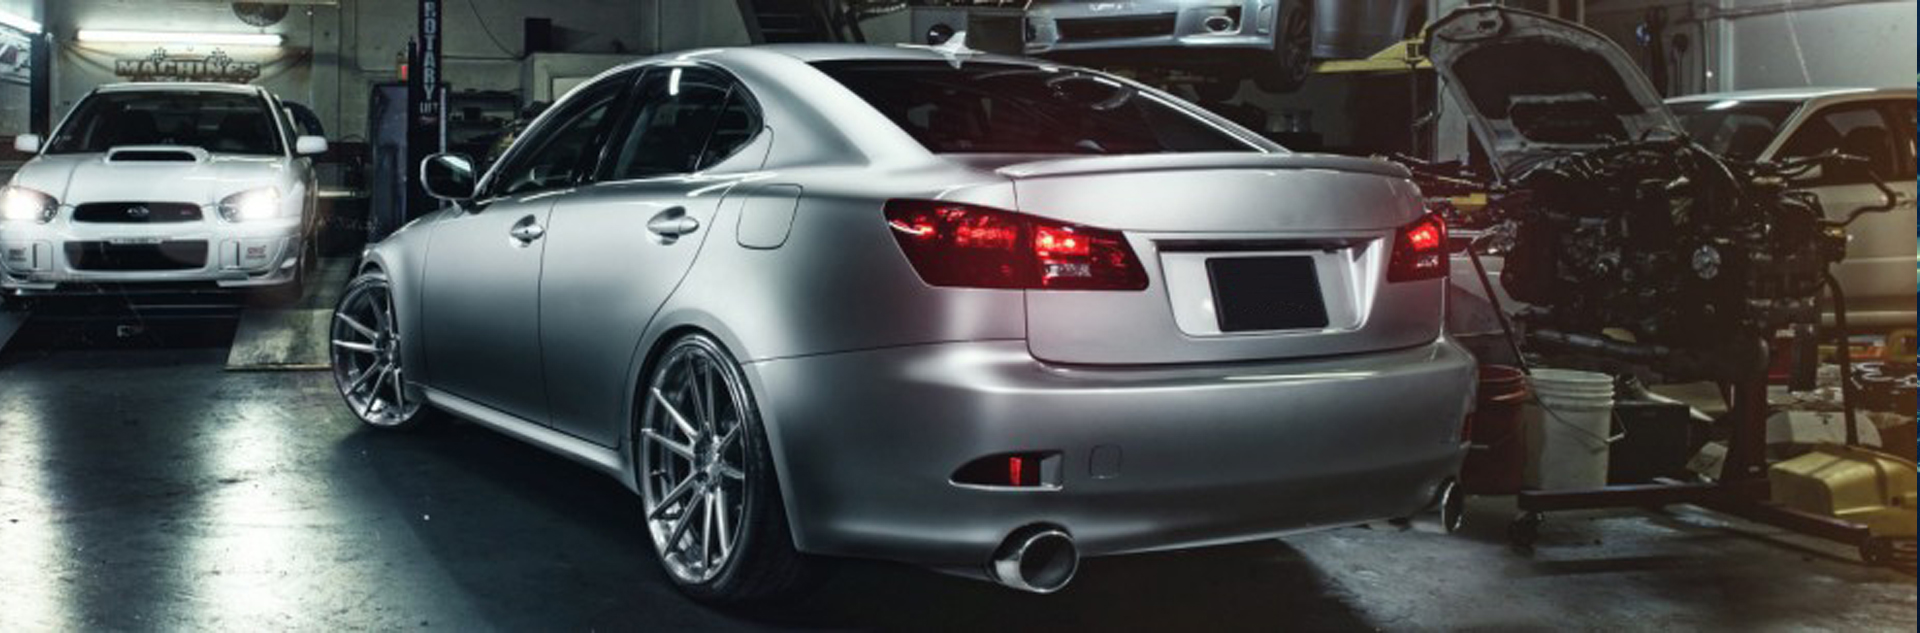 pro-car-styling-banner03